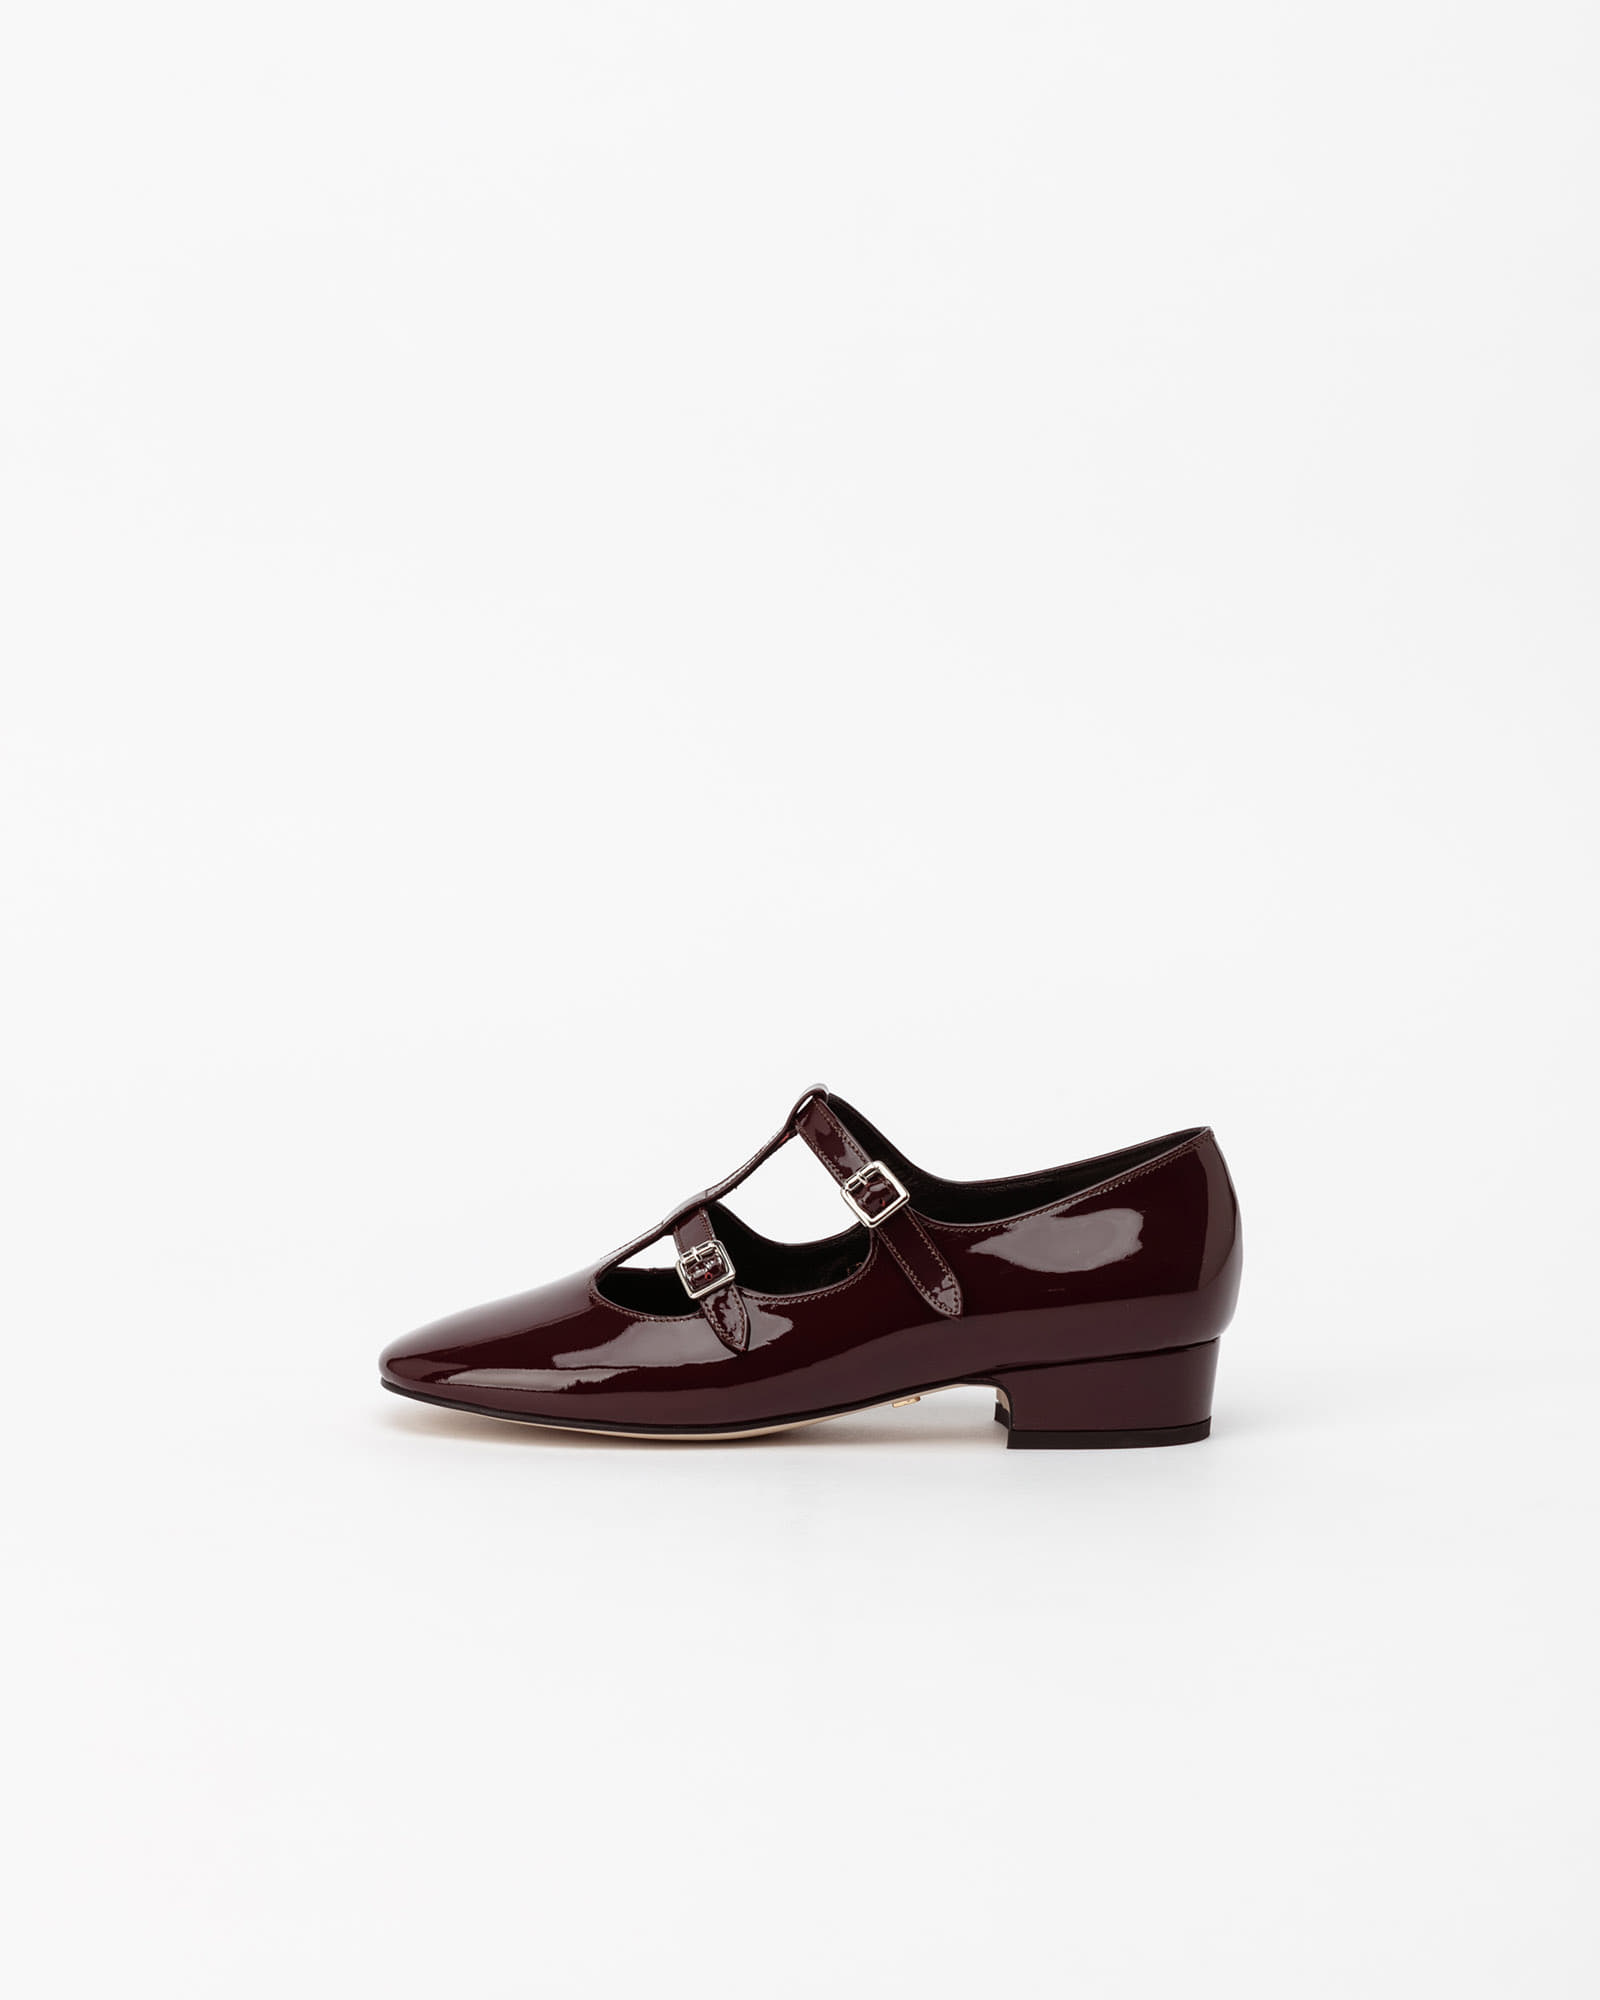 Rupin Double Strap Maryjane Flats in Cherry Wine Patent